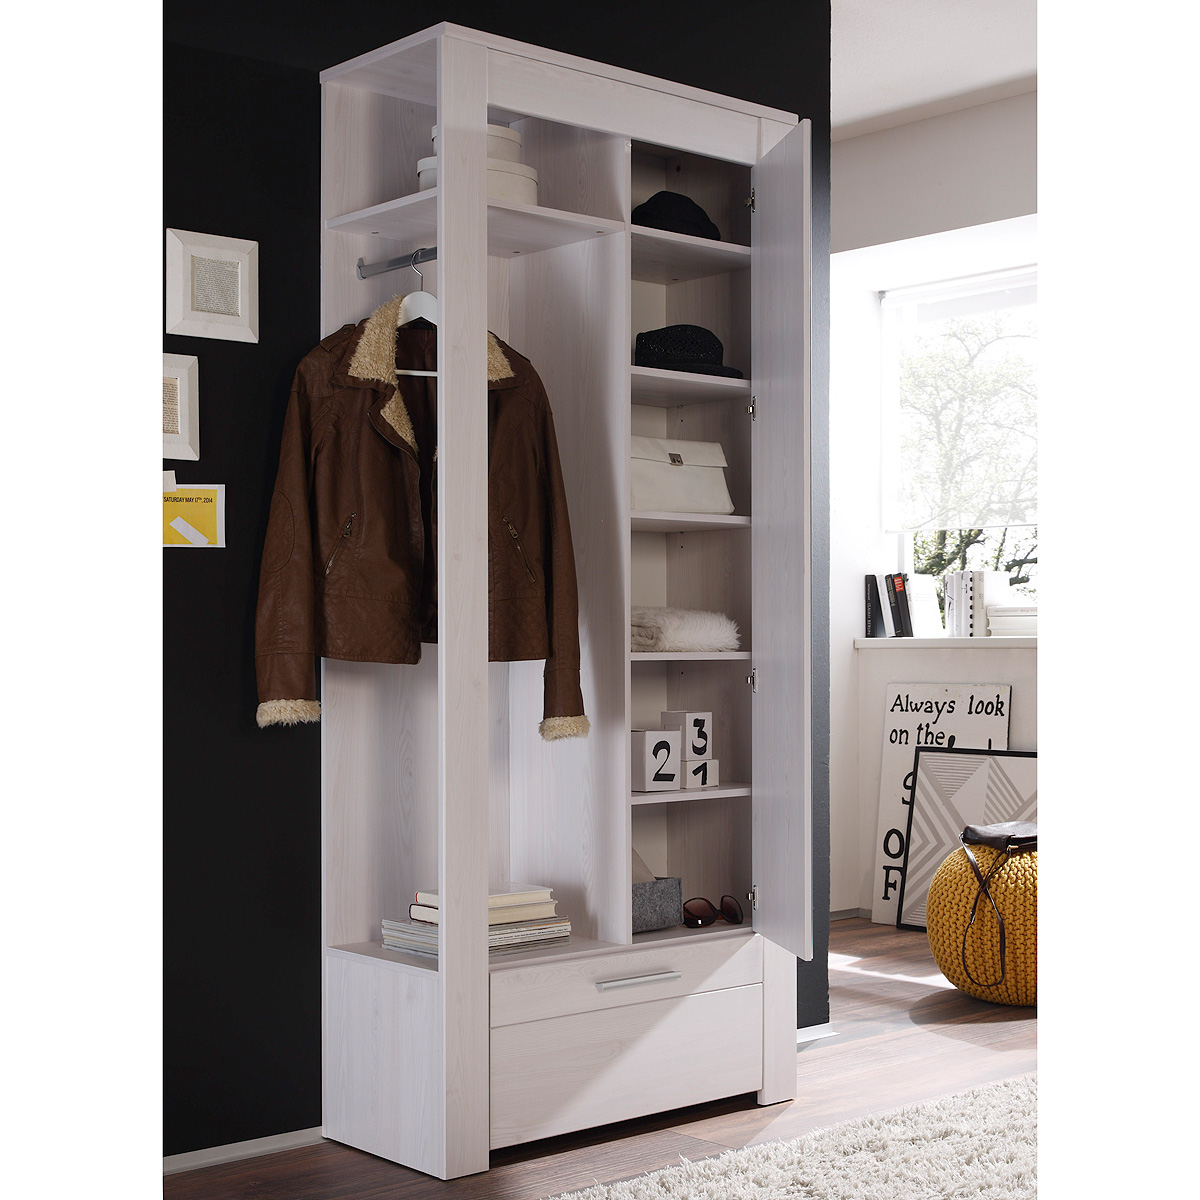 kompaktgarderobe time garderobe in sibiu l rche in wei mit spiegel ebay. Black Bedroom Furniture Sets. Home Design Ideas